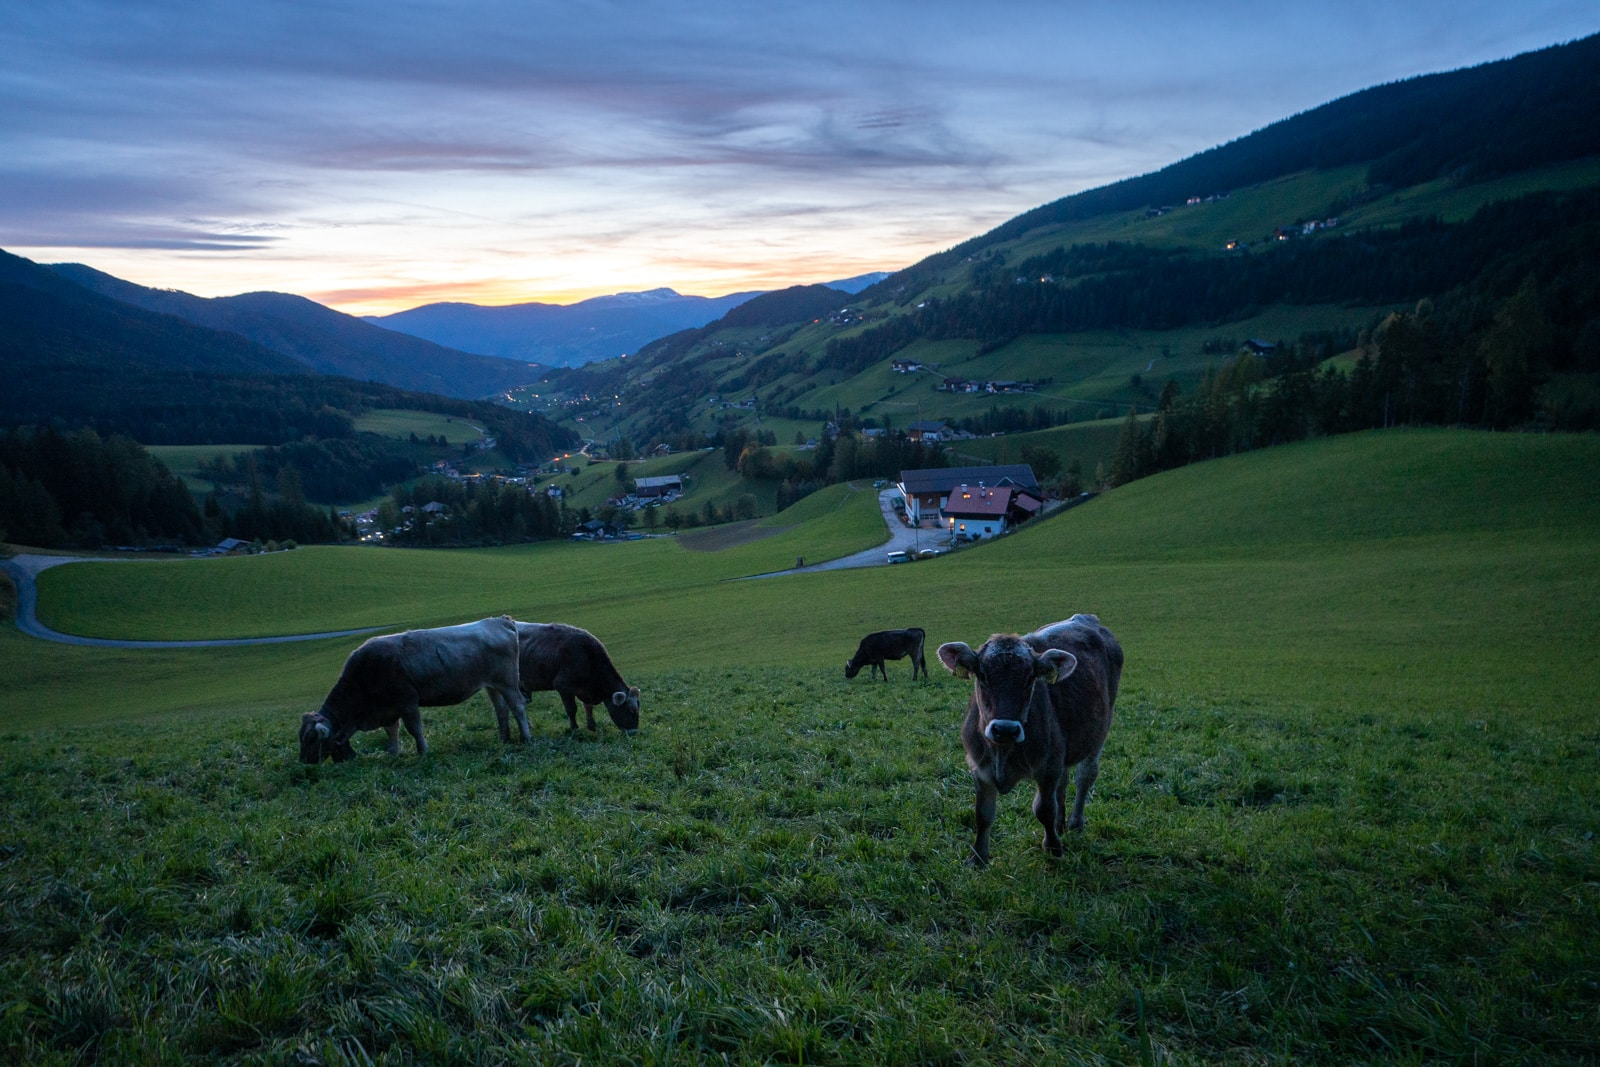 Free range cows grazing in the South Tyrol region of Italy